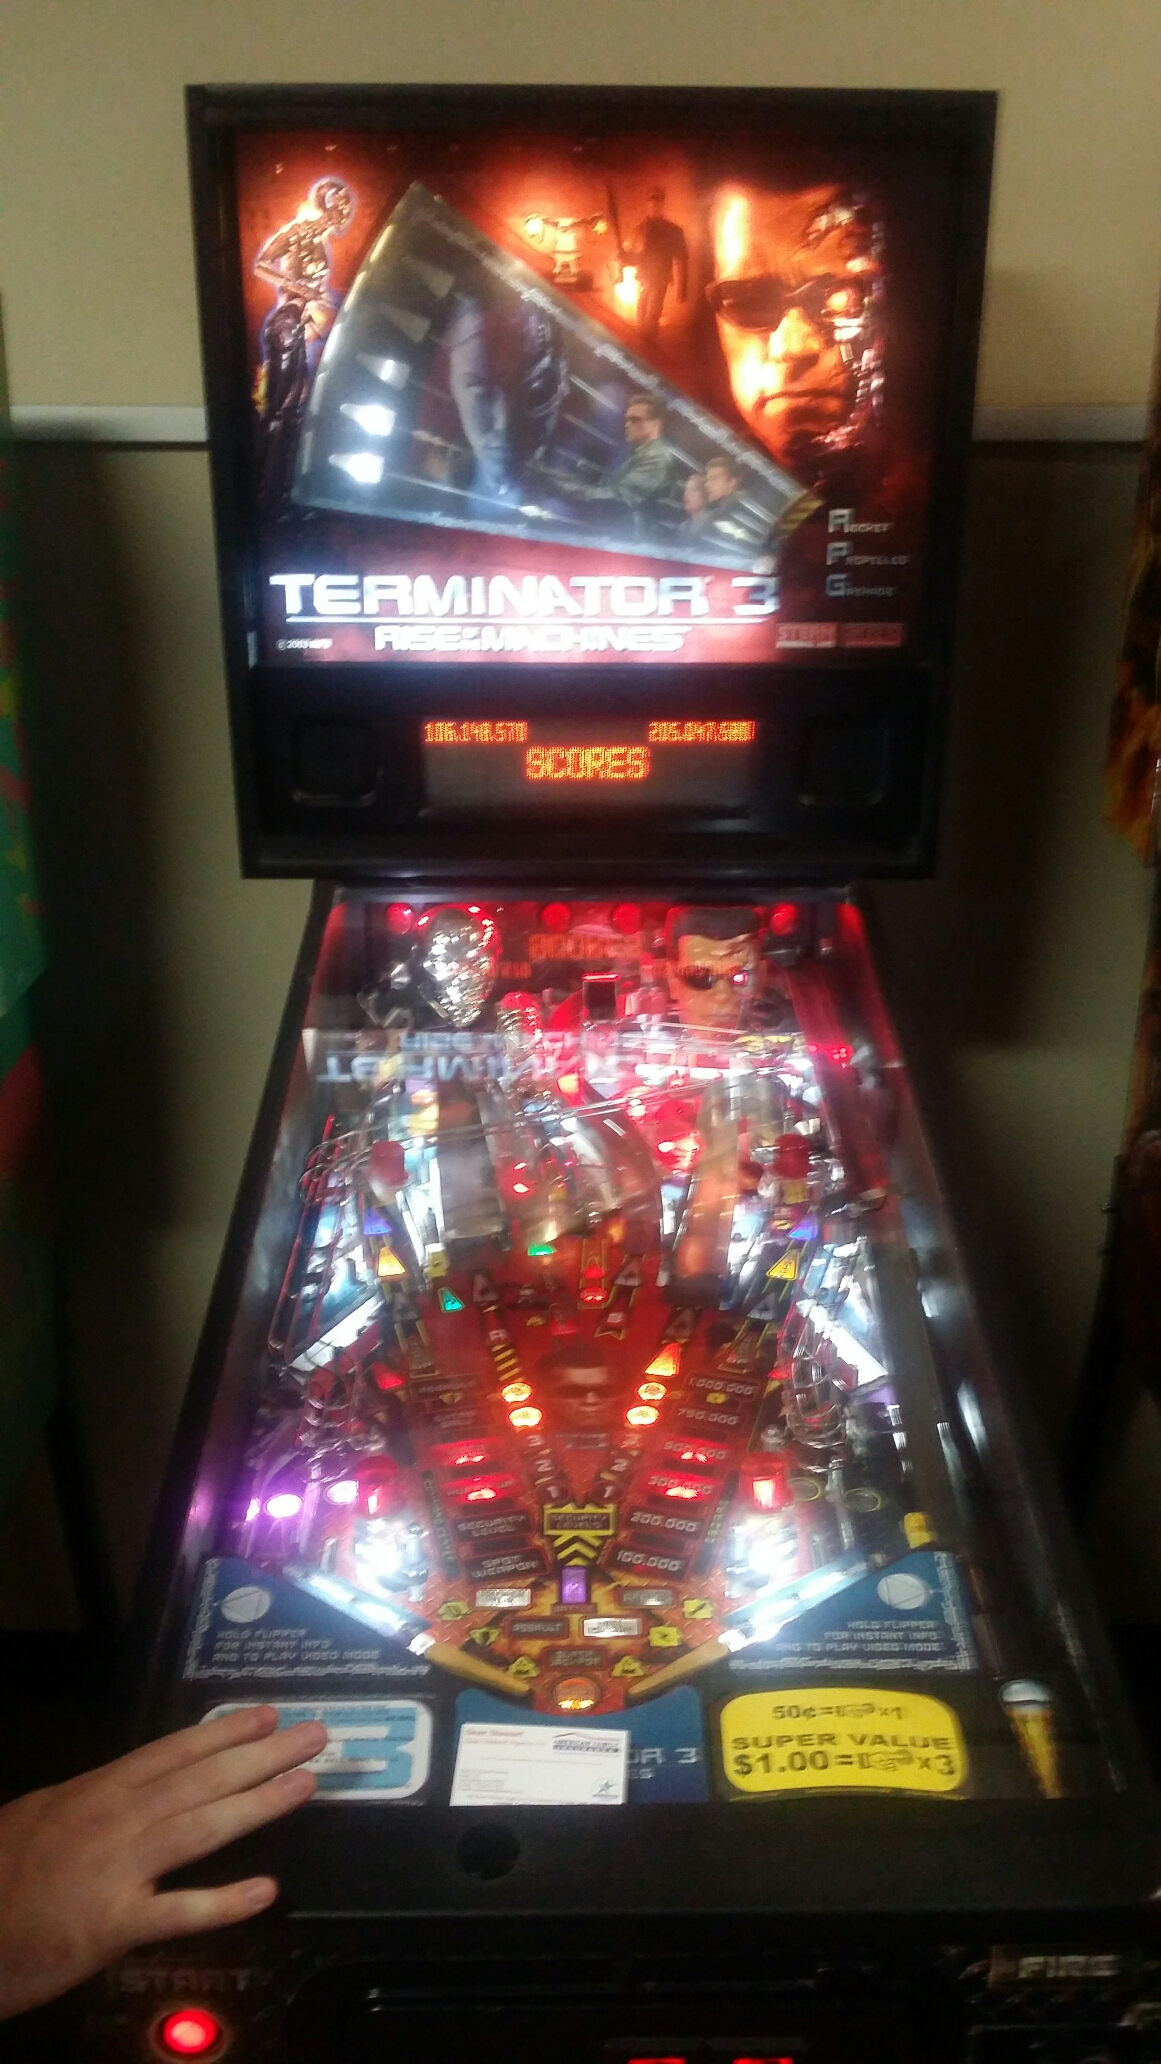 SeanStewart: Terminator 3: Rise of the Machines (Pinball: 3 Balls) 205,047,580 points on 2018-03-15 15:24:04